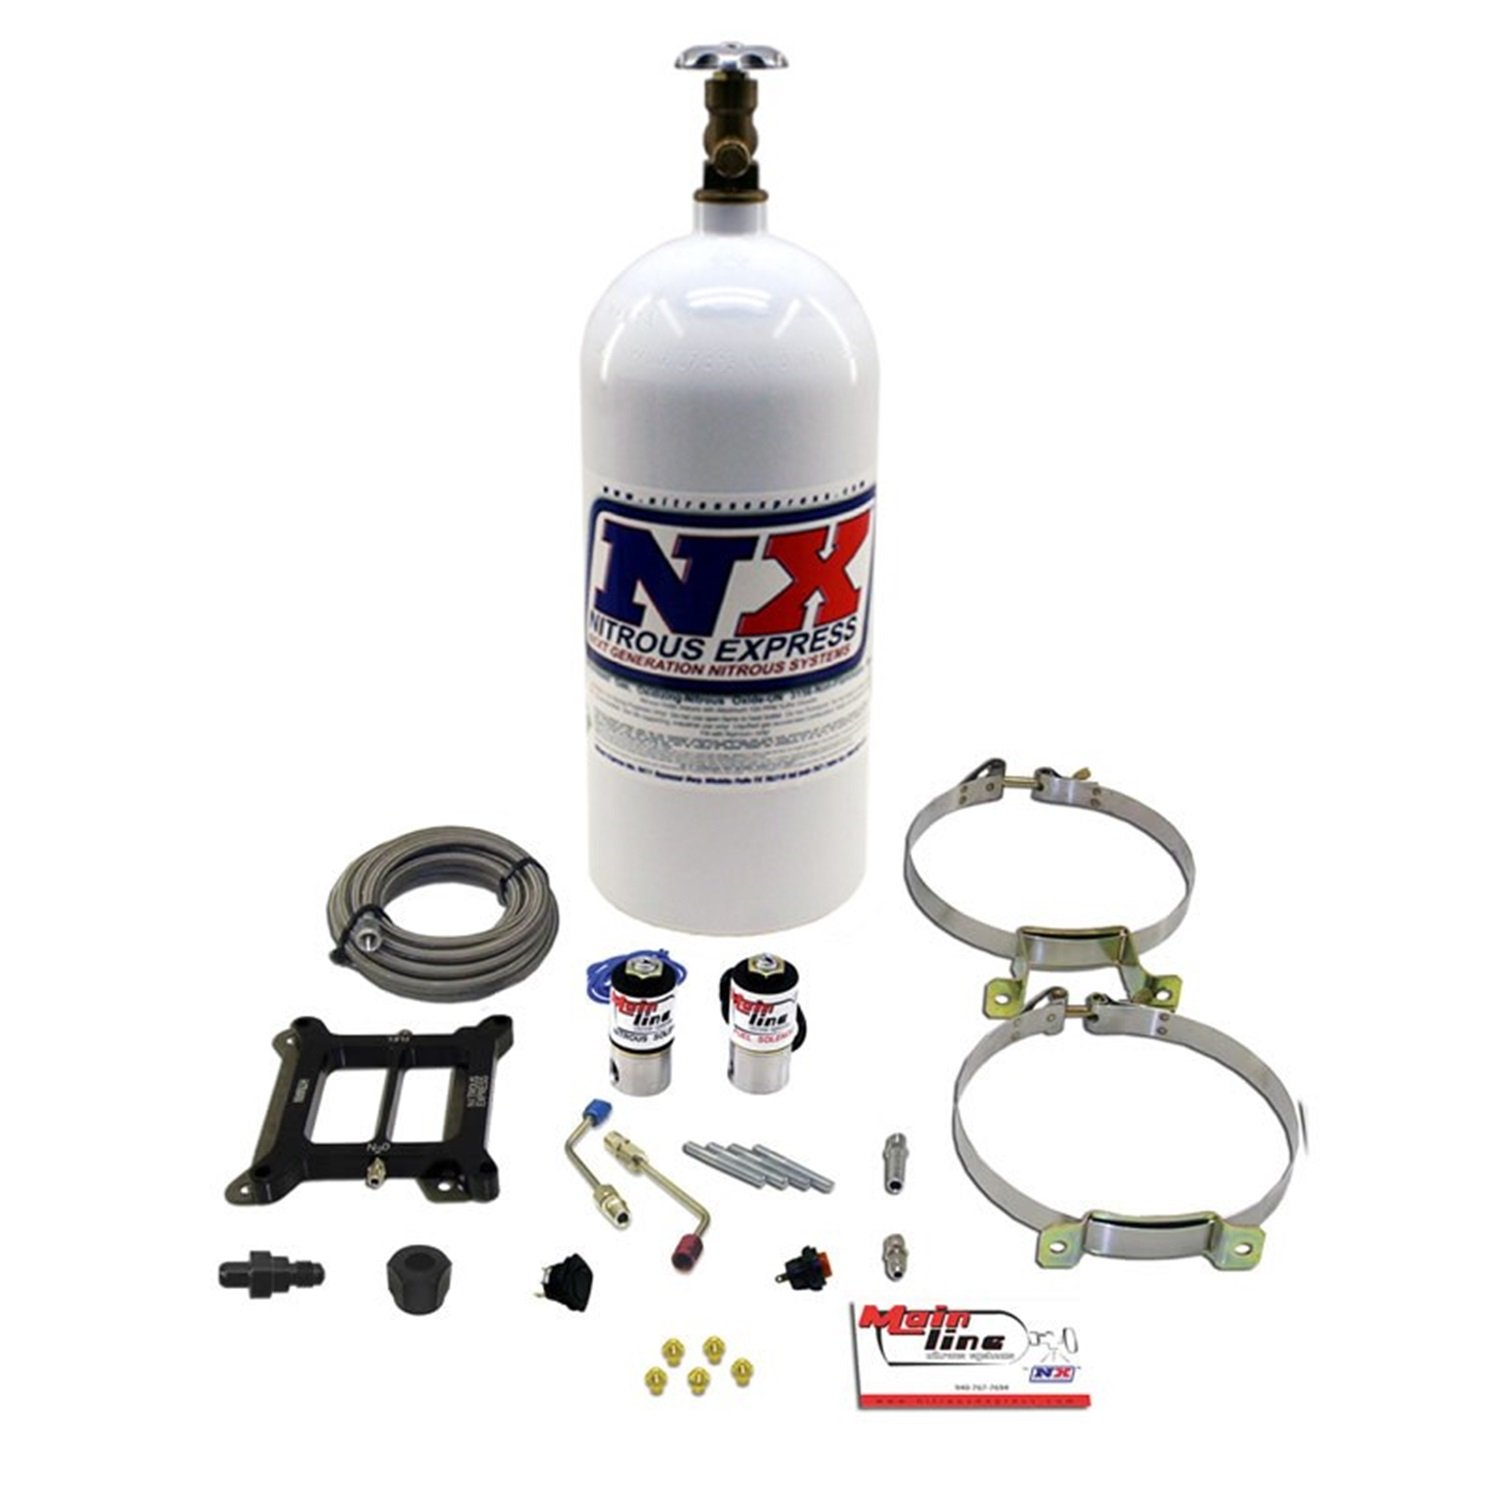 Nitrous Express ML1000 MainLine 5-10 psi Carbureted Plate System with 10 lbs. Bottle